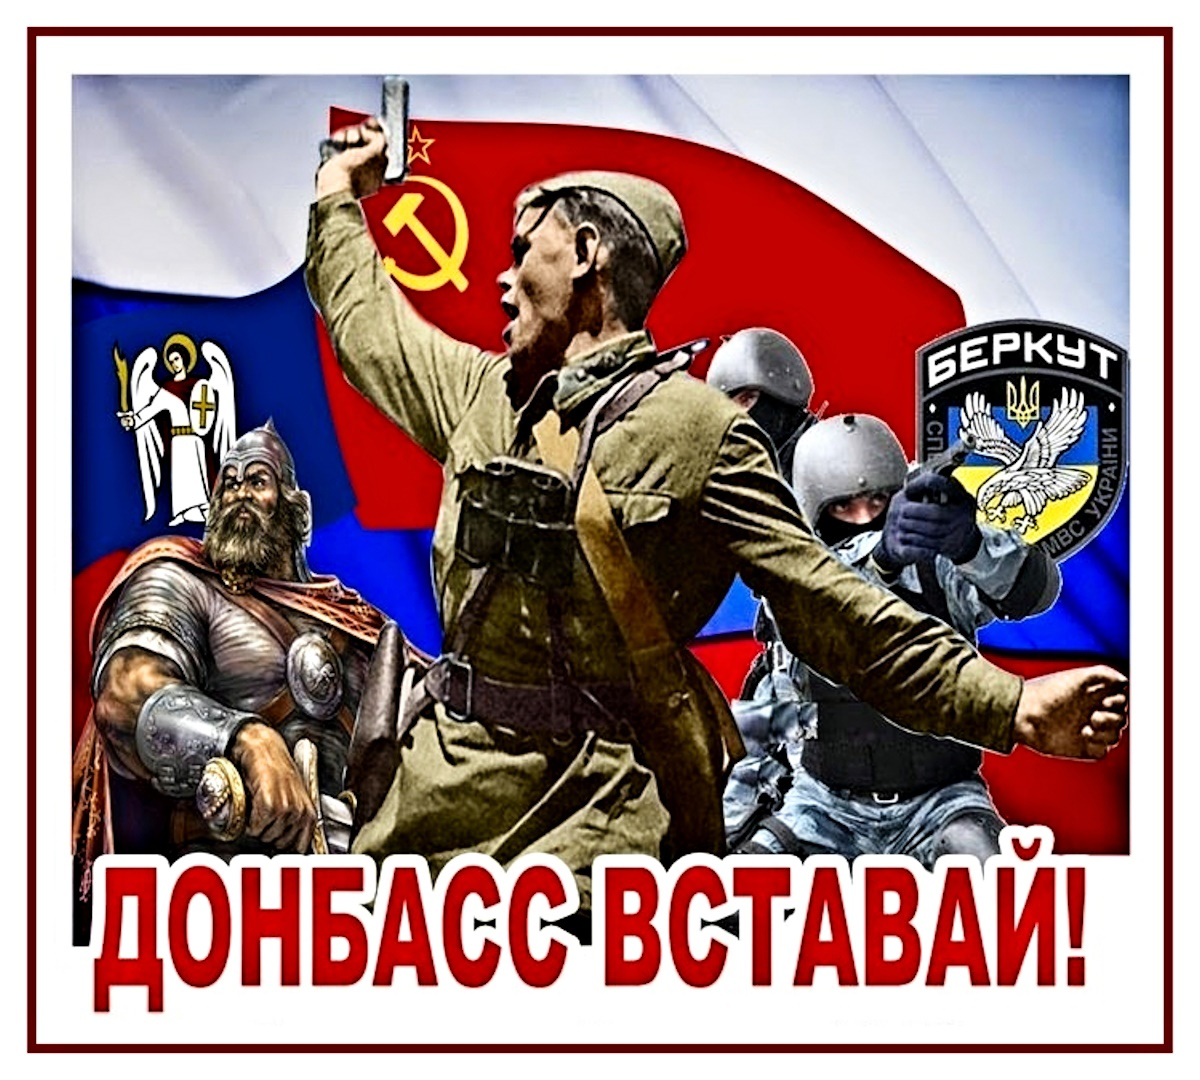 00 Donbass Arise! 24.05.14